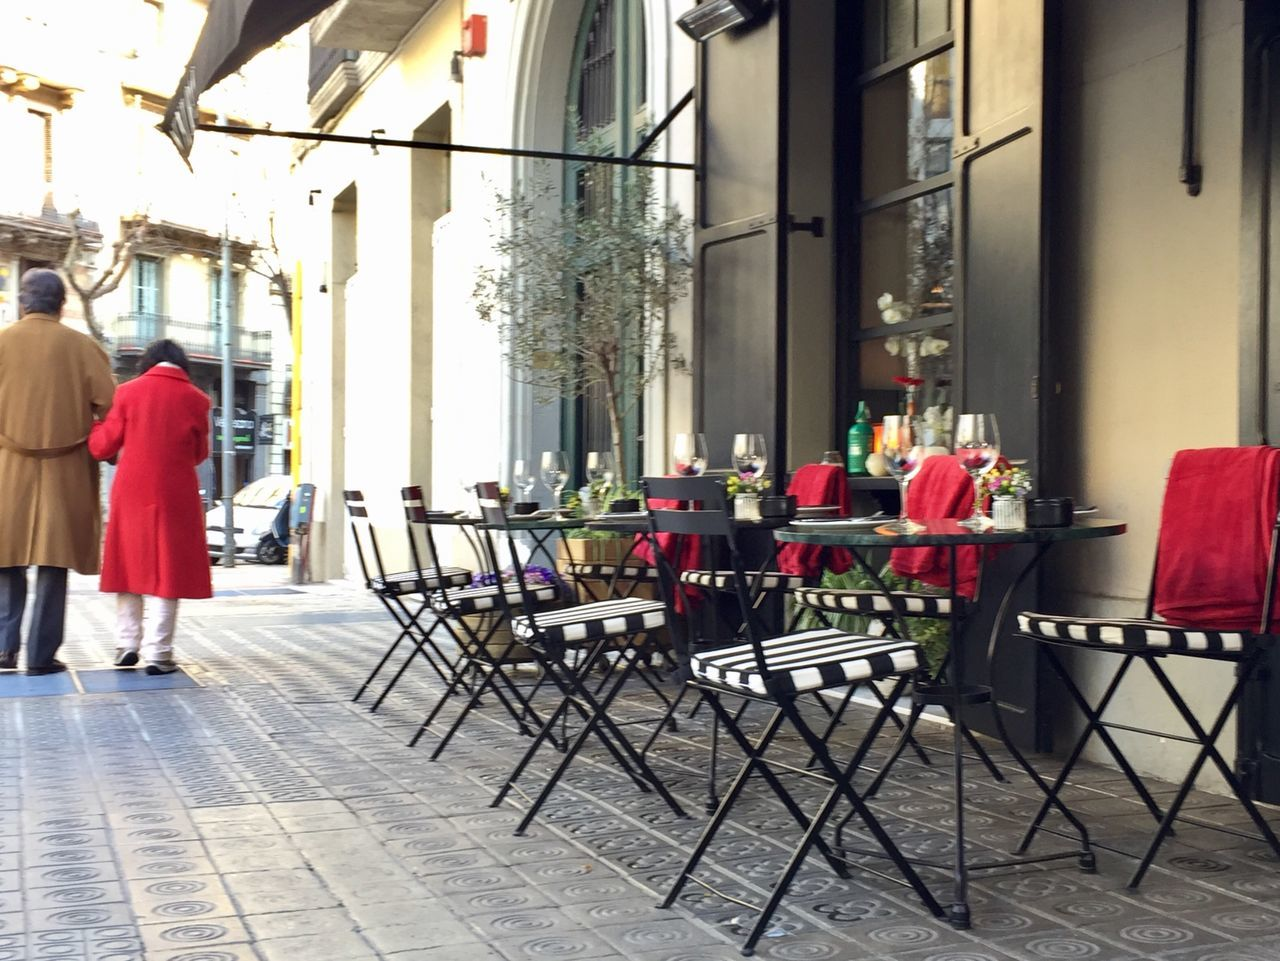 Chair Built Structure Table Women City Architecture Outdoors Day Adult Adults Only People Cityscape Red Street Photography Streetphotography